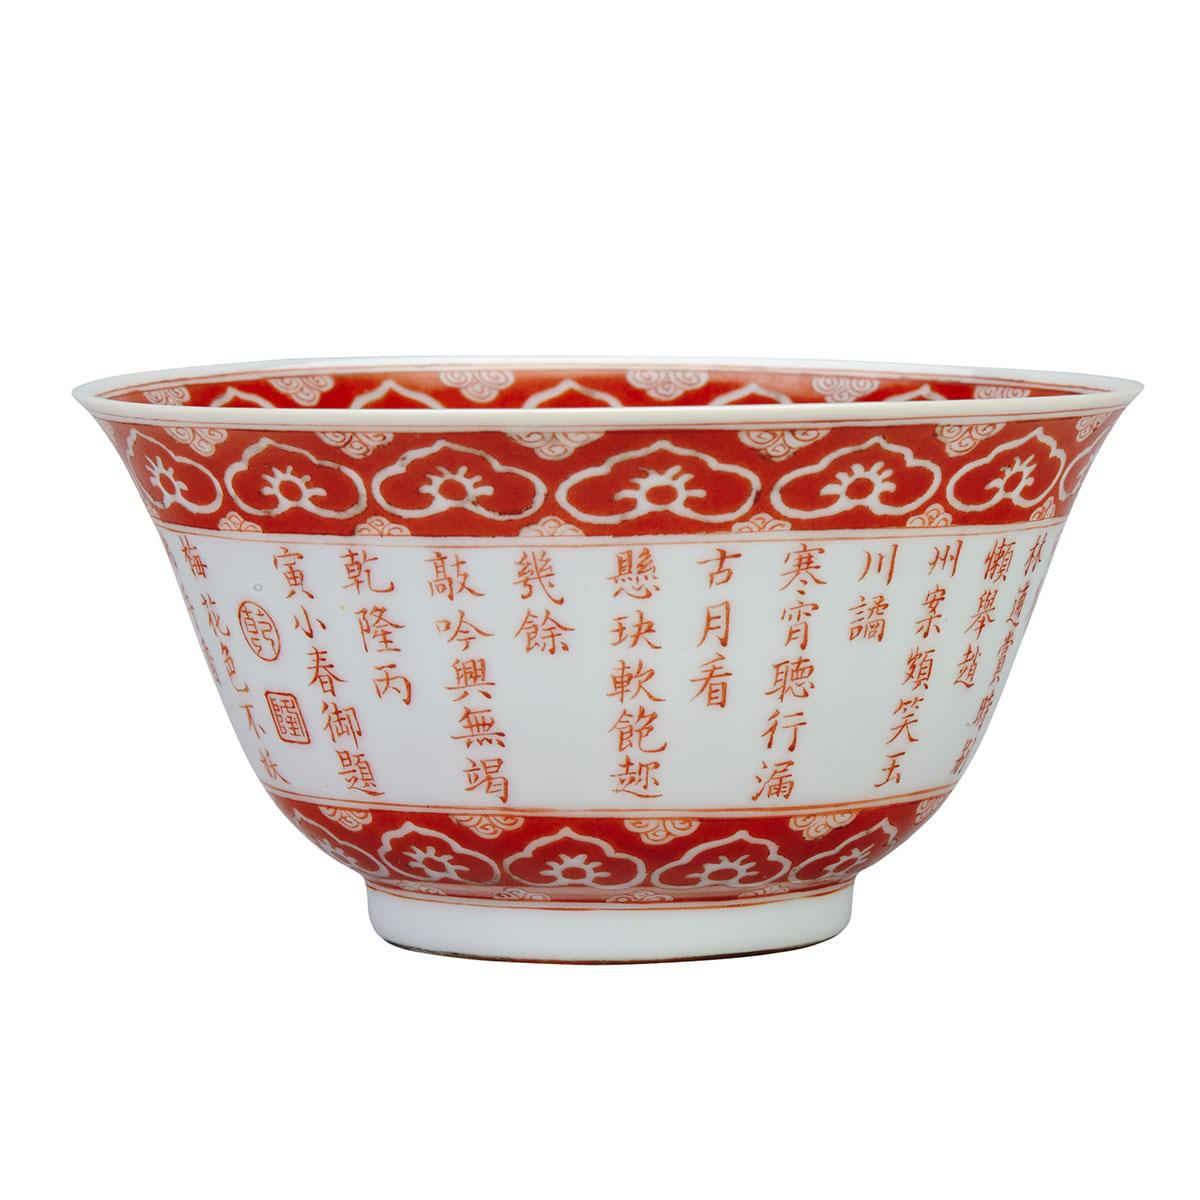 Iron Red 'Poem' Tea Bowl, Qianlong Mark and Period (1736-1795)